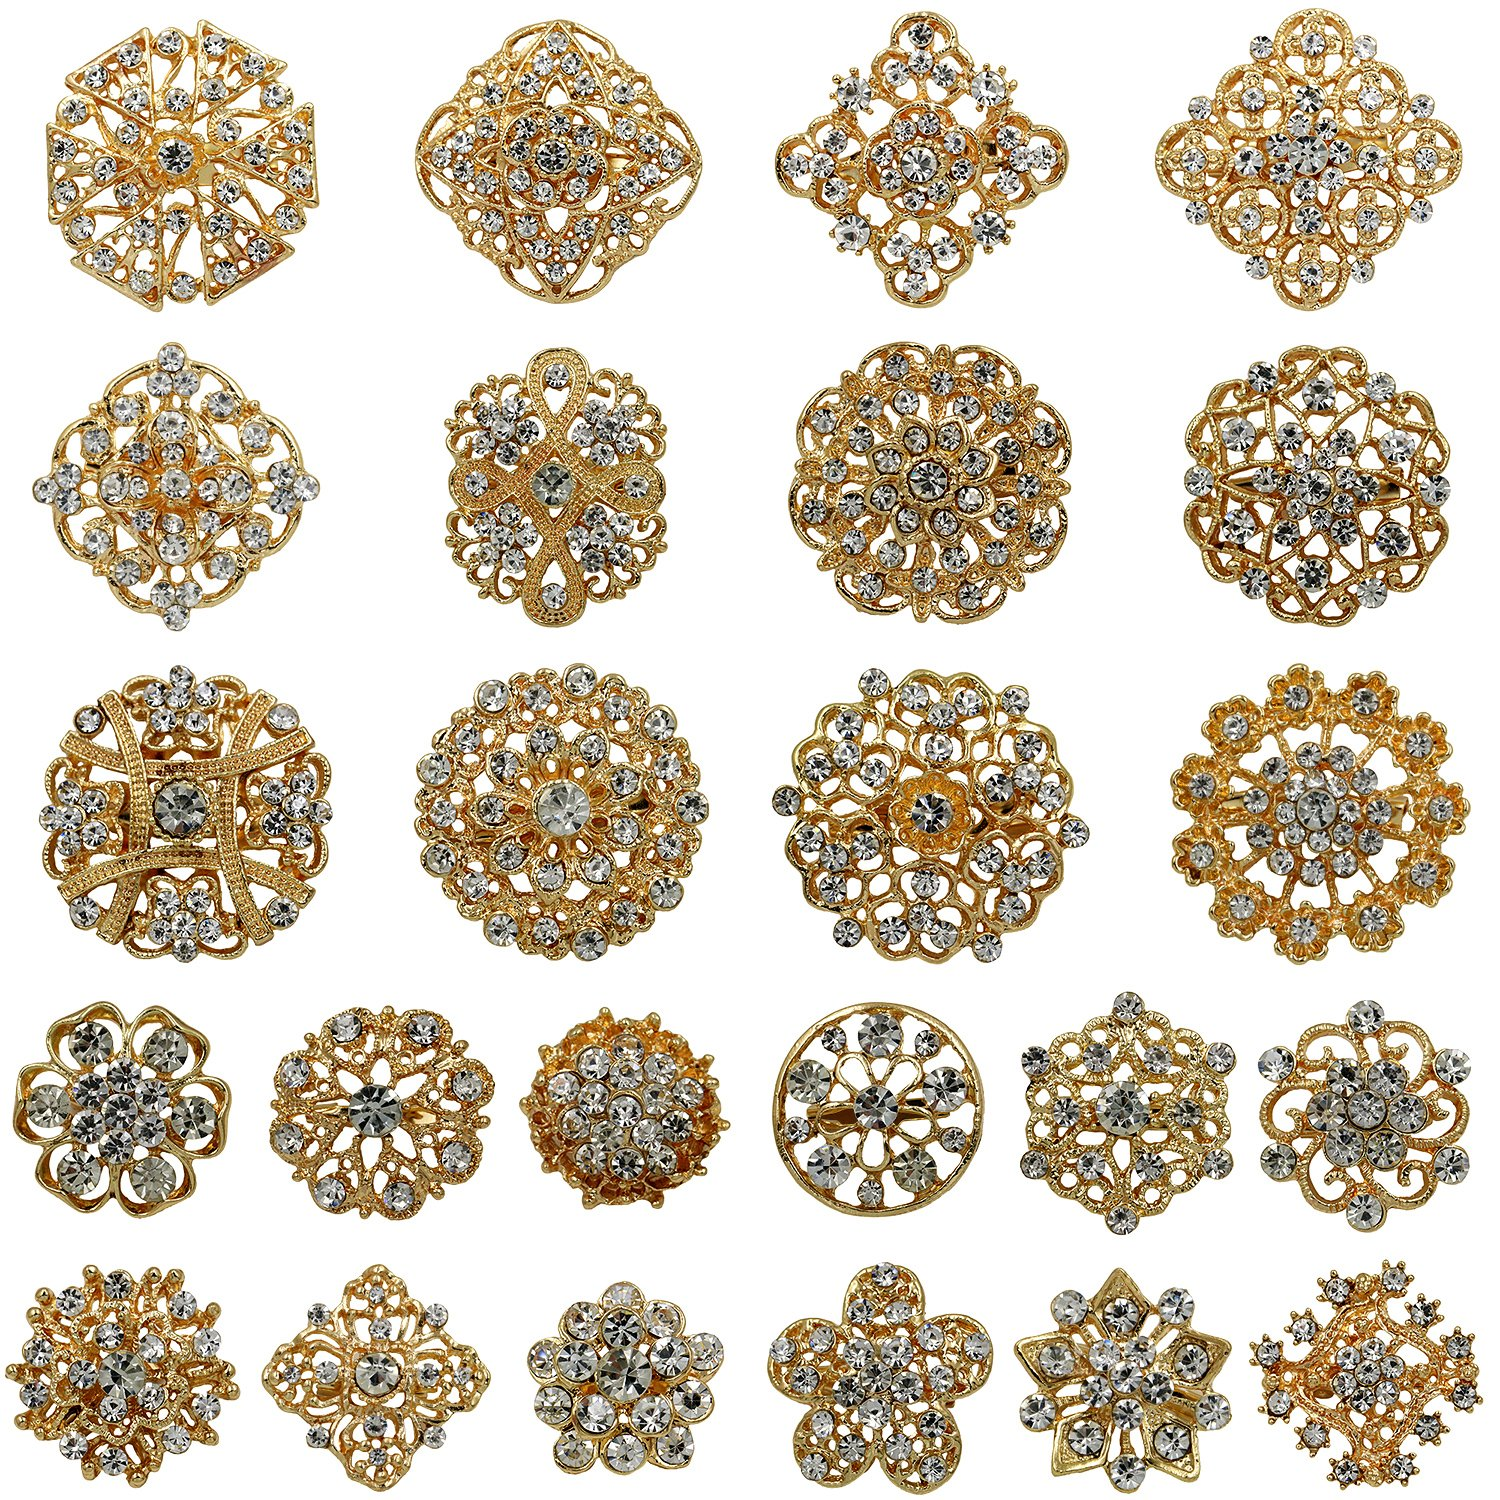 WeimanJewelry Lot 24pcs Rhinestone Crystal Brooch Pins Set Wedding Bouquet Broaches Kit (gold)